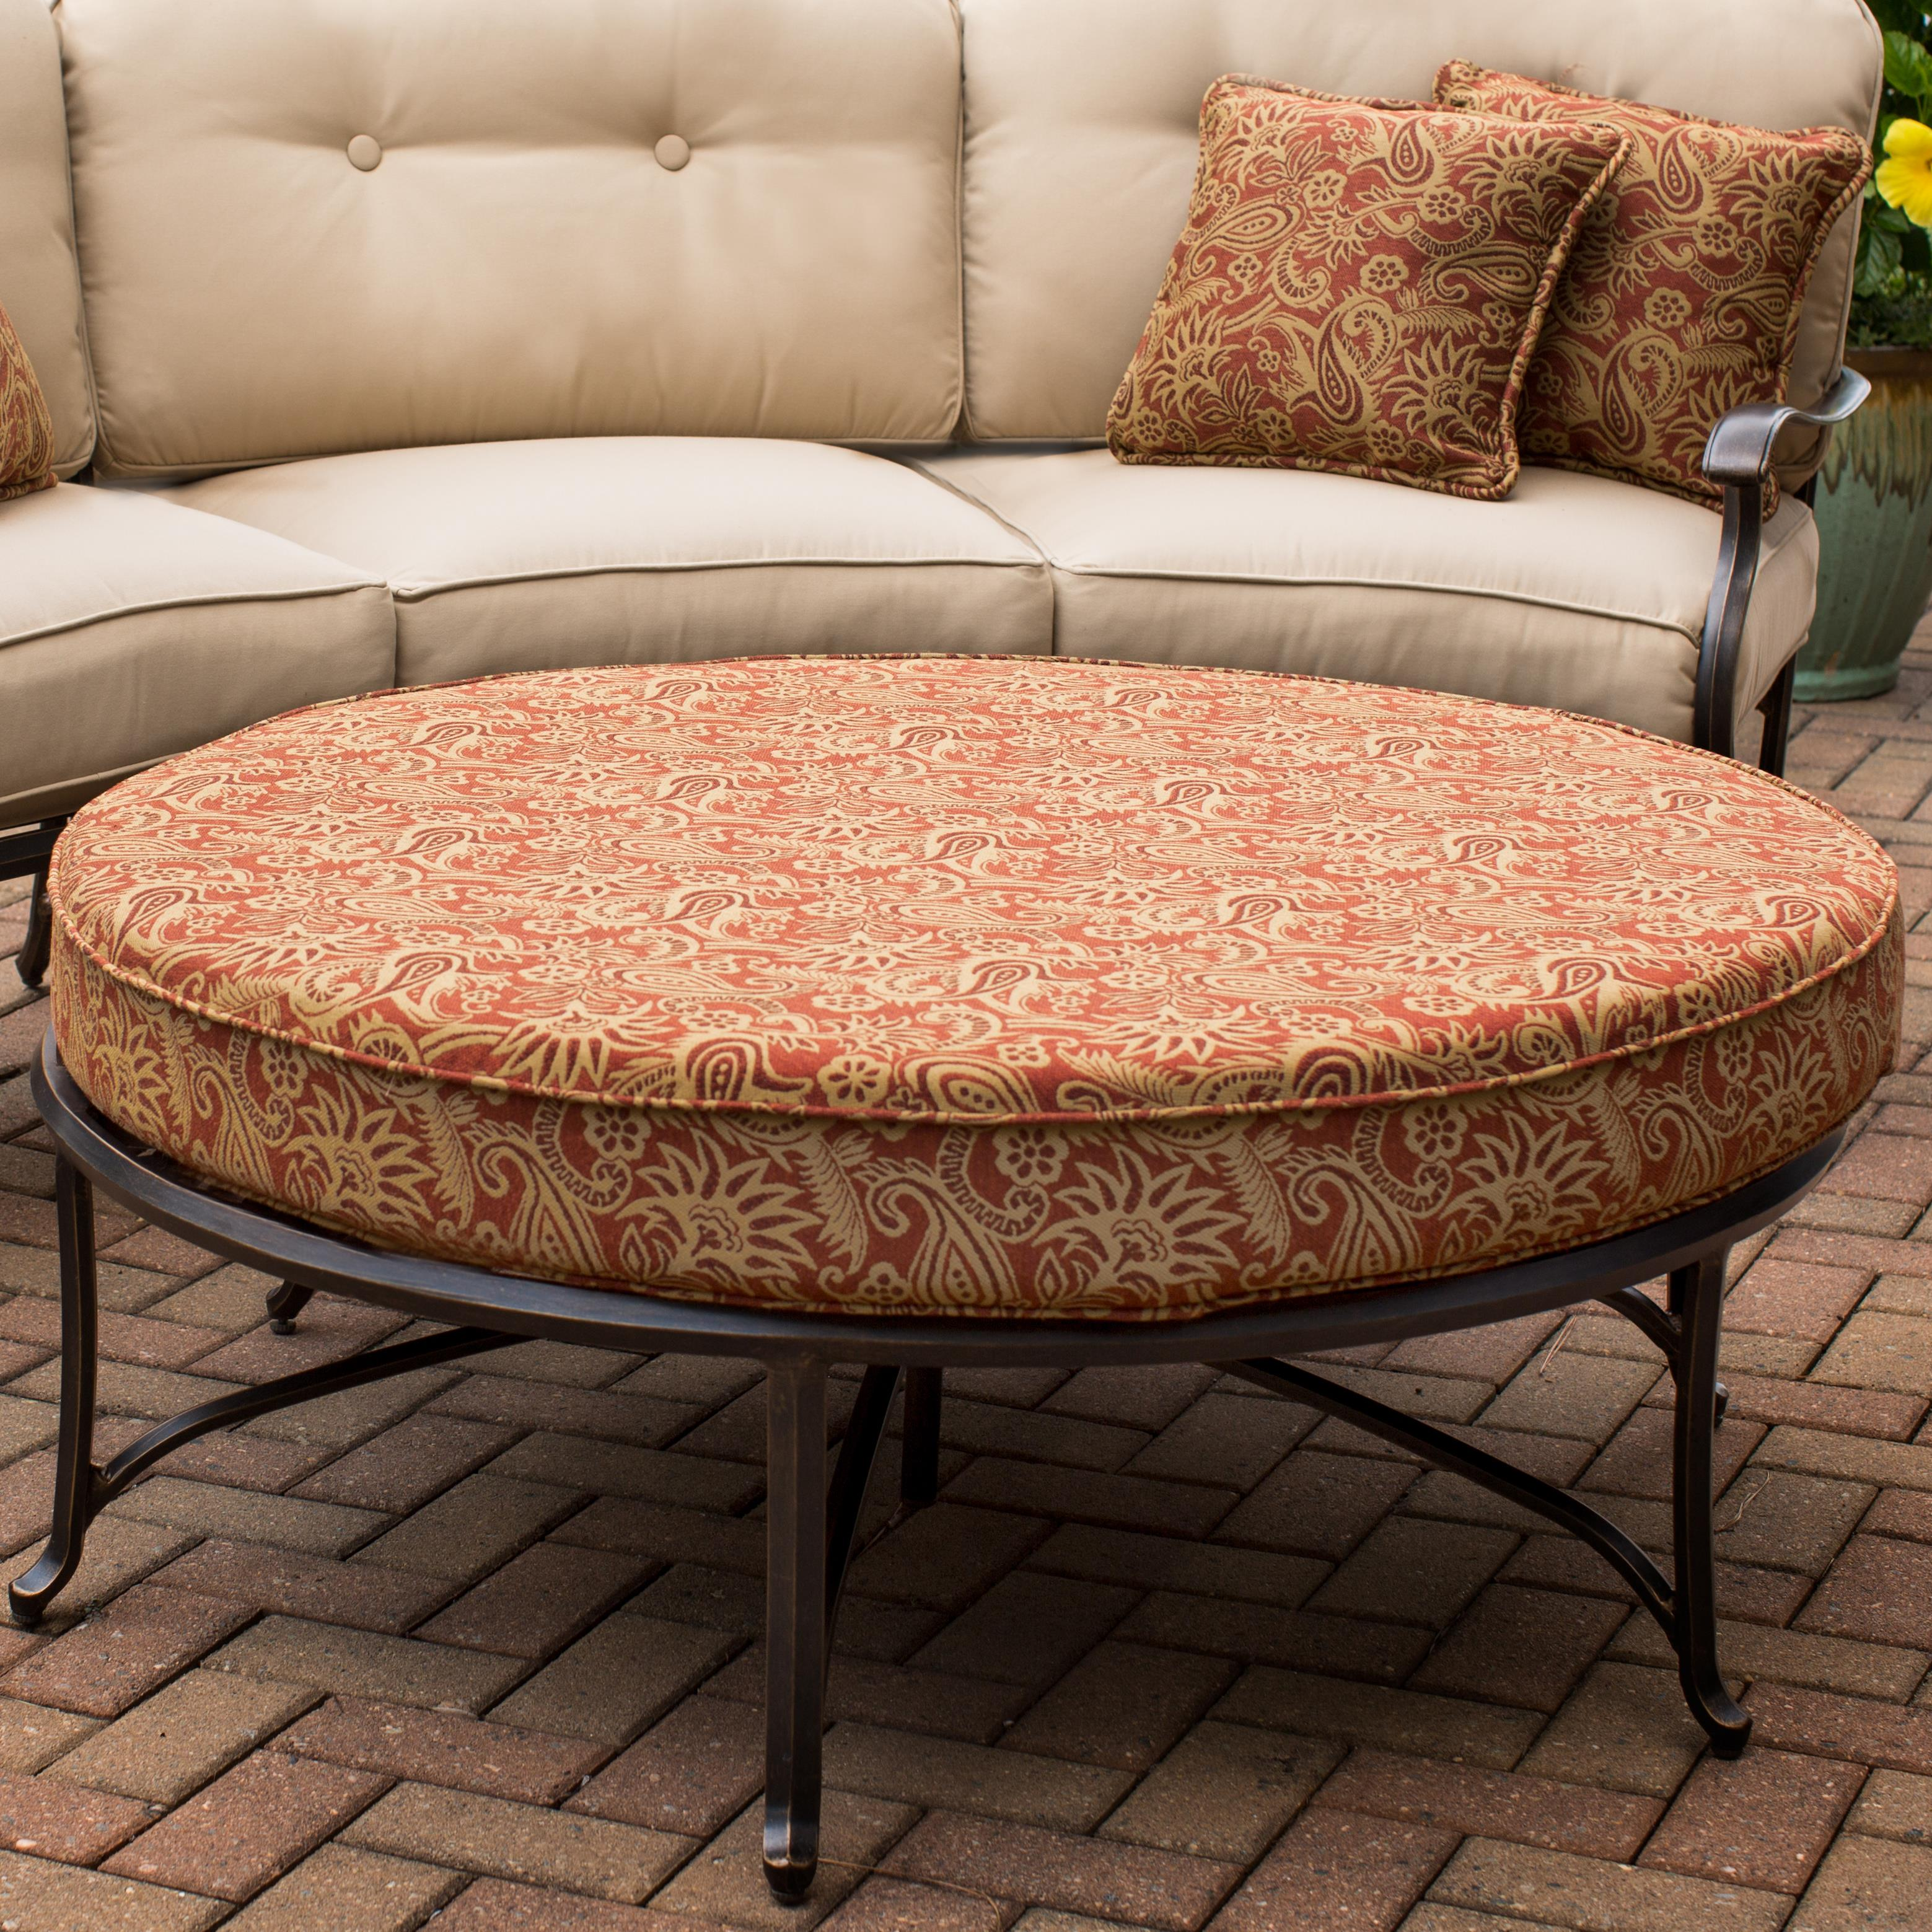 Agio Heritage Round Ottoman for Sectional Sofa FMG Local Home